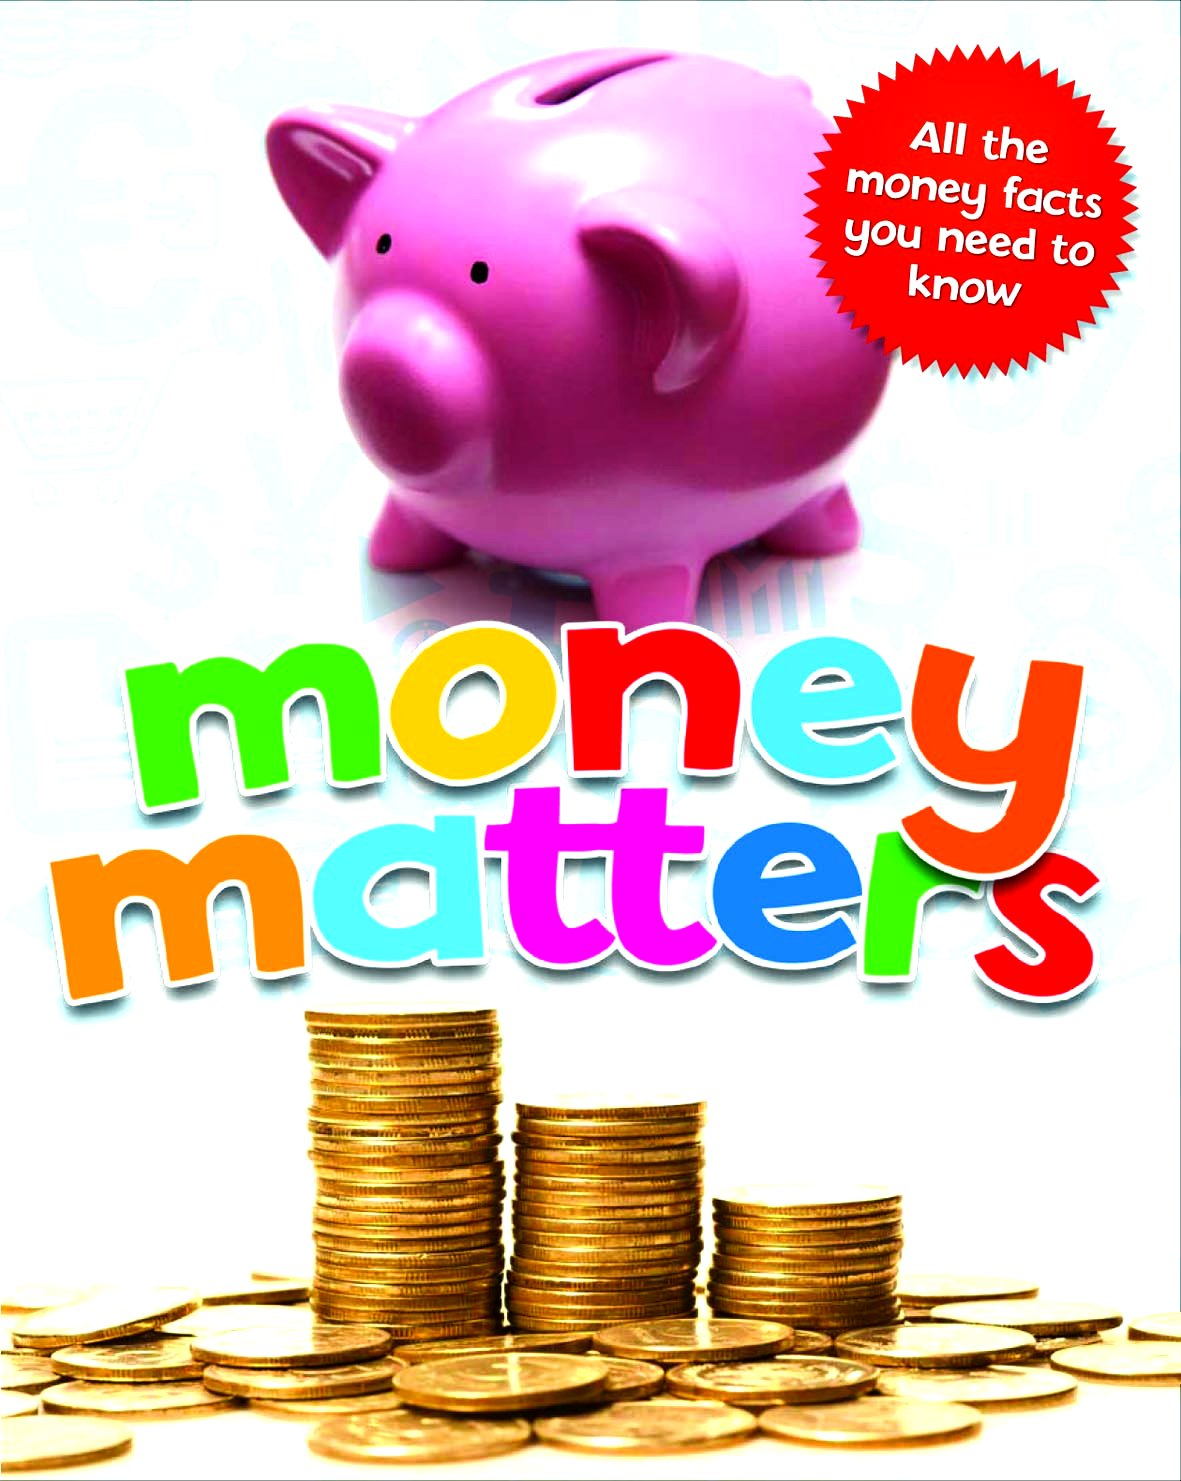 Money Matters Google image from http://www.qed-publishing.co.uk/images/covers/Money%20Matters%20Cover.jpg